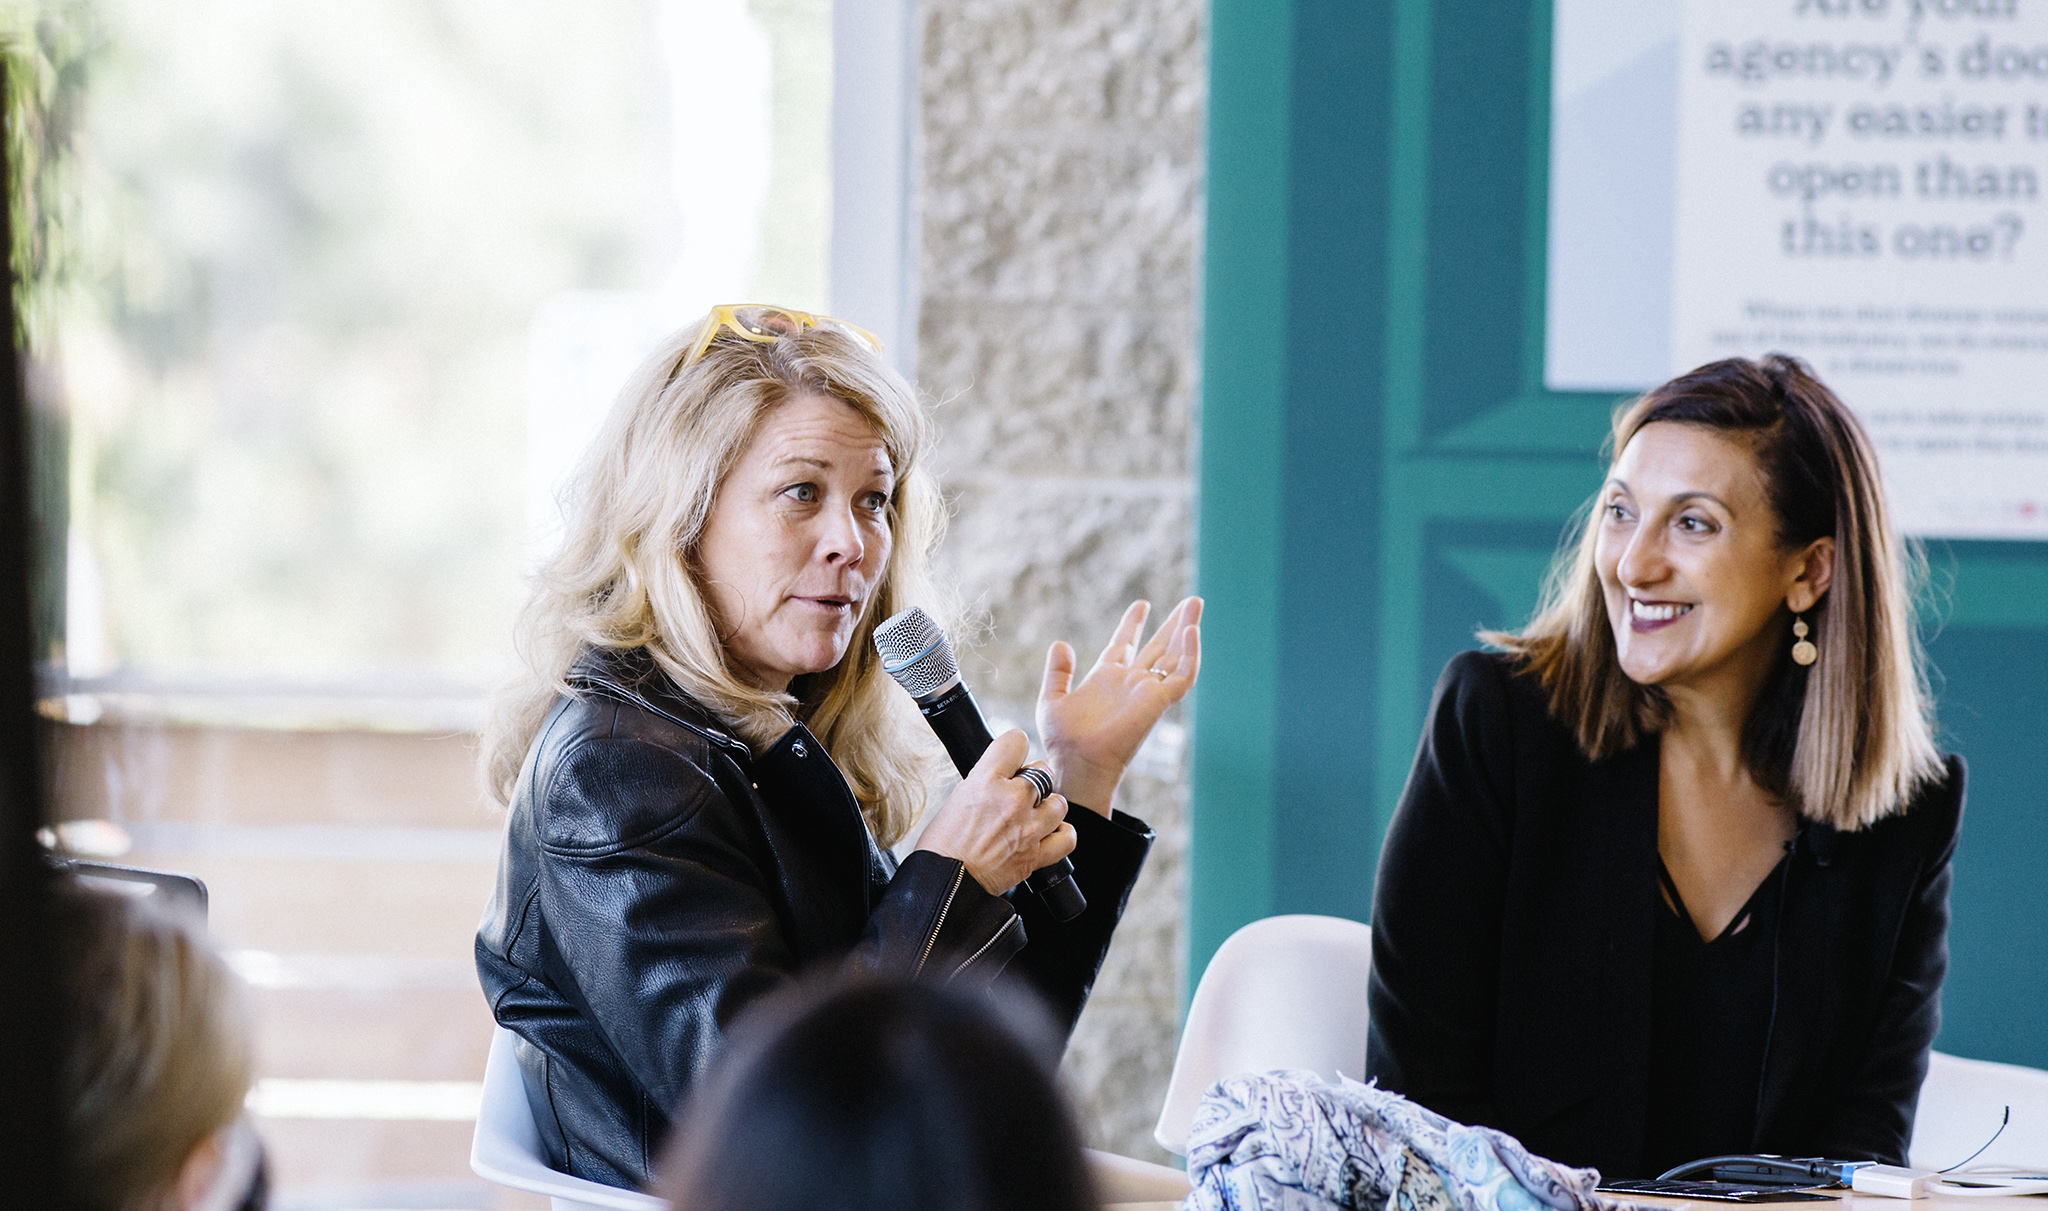 Lisen Stromberg, Chief Operating Officer at 3% converses with Amanda Enayati during a breakout session at the 3% Mini-Conference at the Steelhead headquarters in Los Angeles on April 26th, 2018.